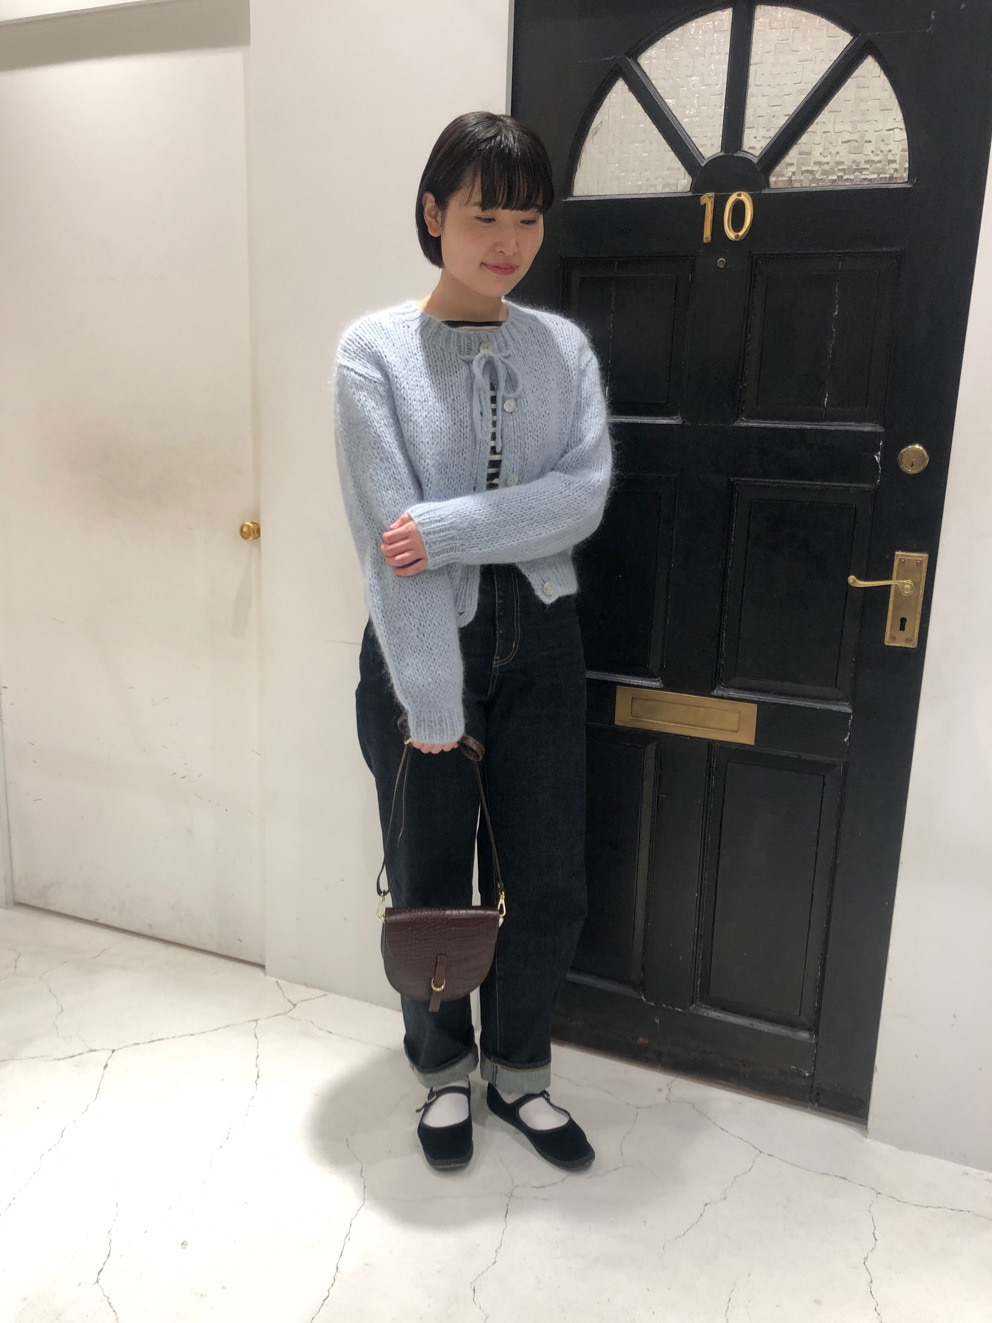 Dot and Stripes CHILD WOMAN ルクアイーレ 身長:165cm 2020.11.26